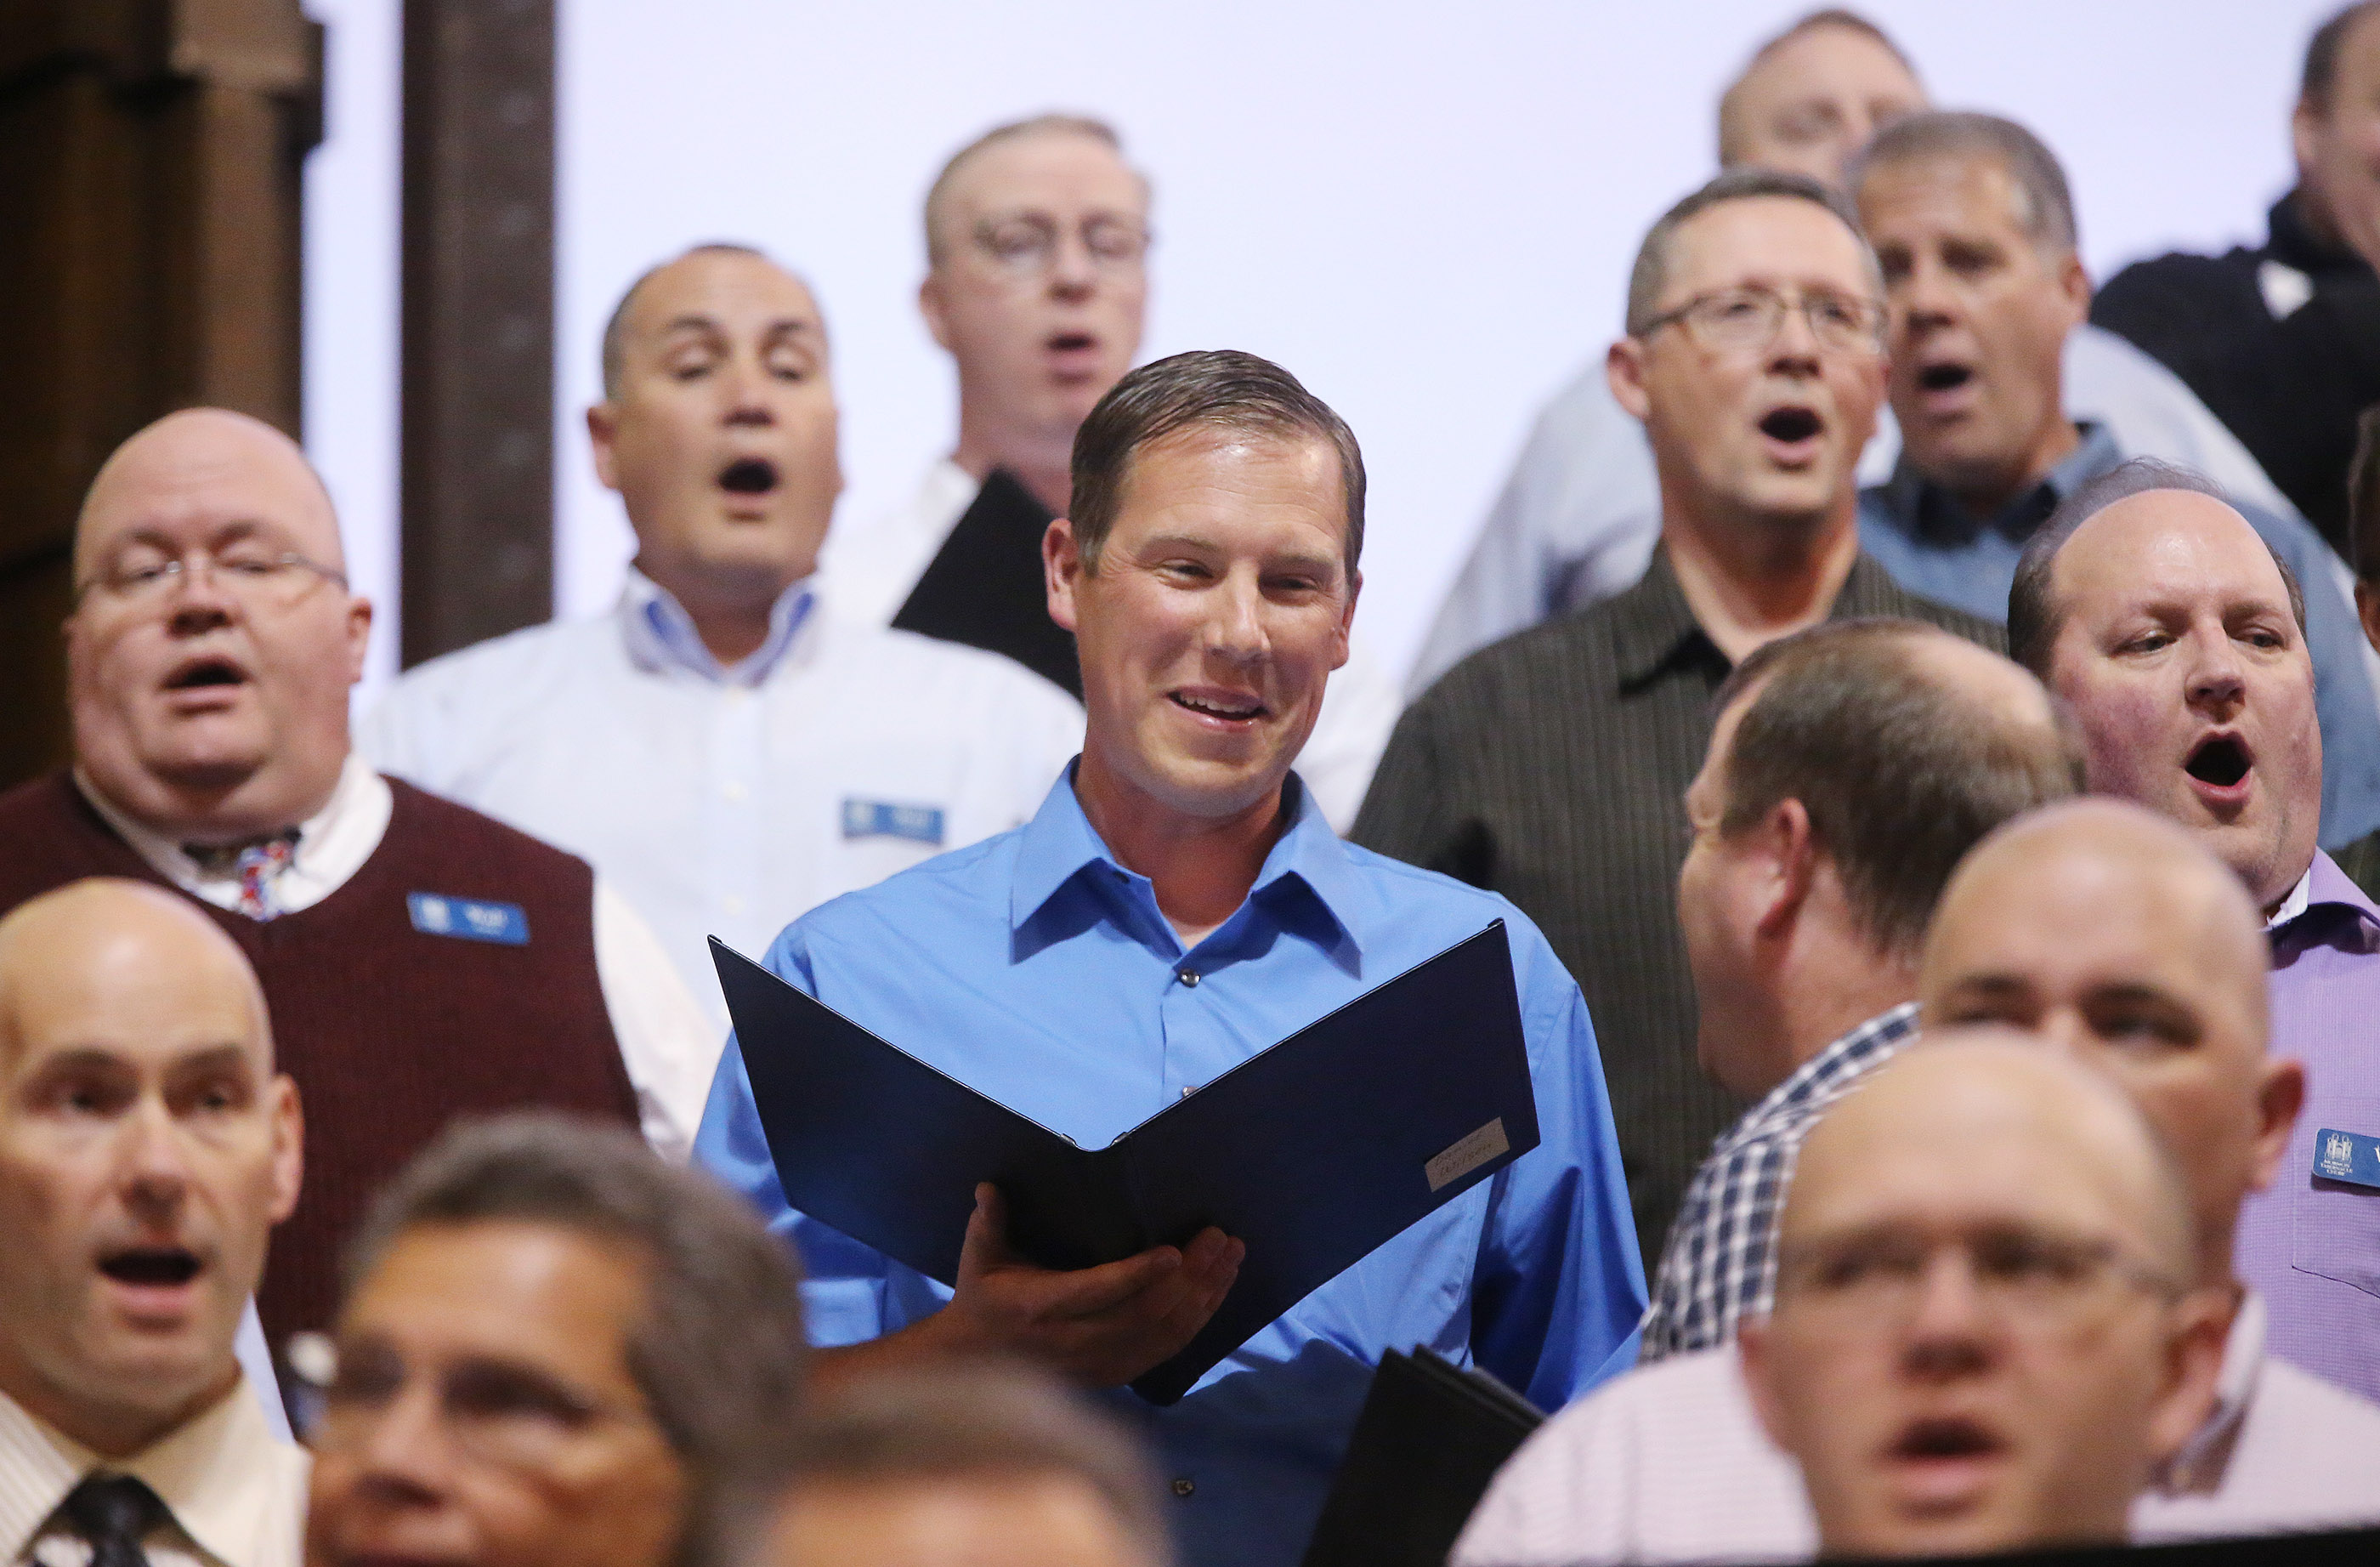 Daniel Wilson, center, sings with The Tabernacle Choir at Temple Square during a rehearsal in Salt Lake City on Thursday, April 11, 2019. Four people were selected through social media to sing with the choir.